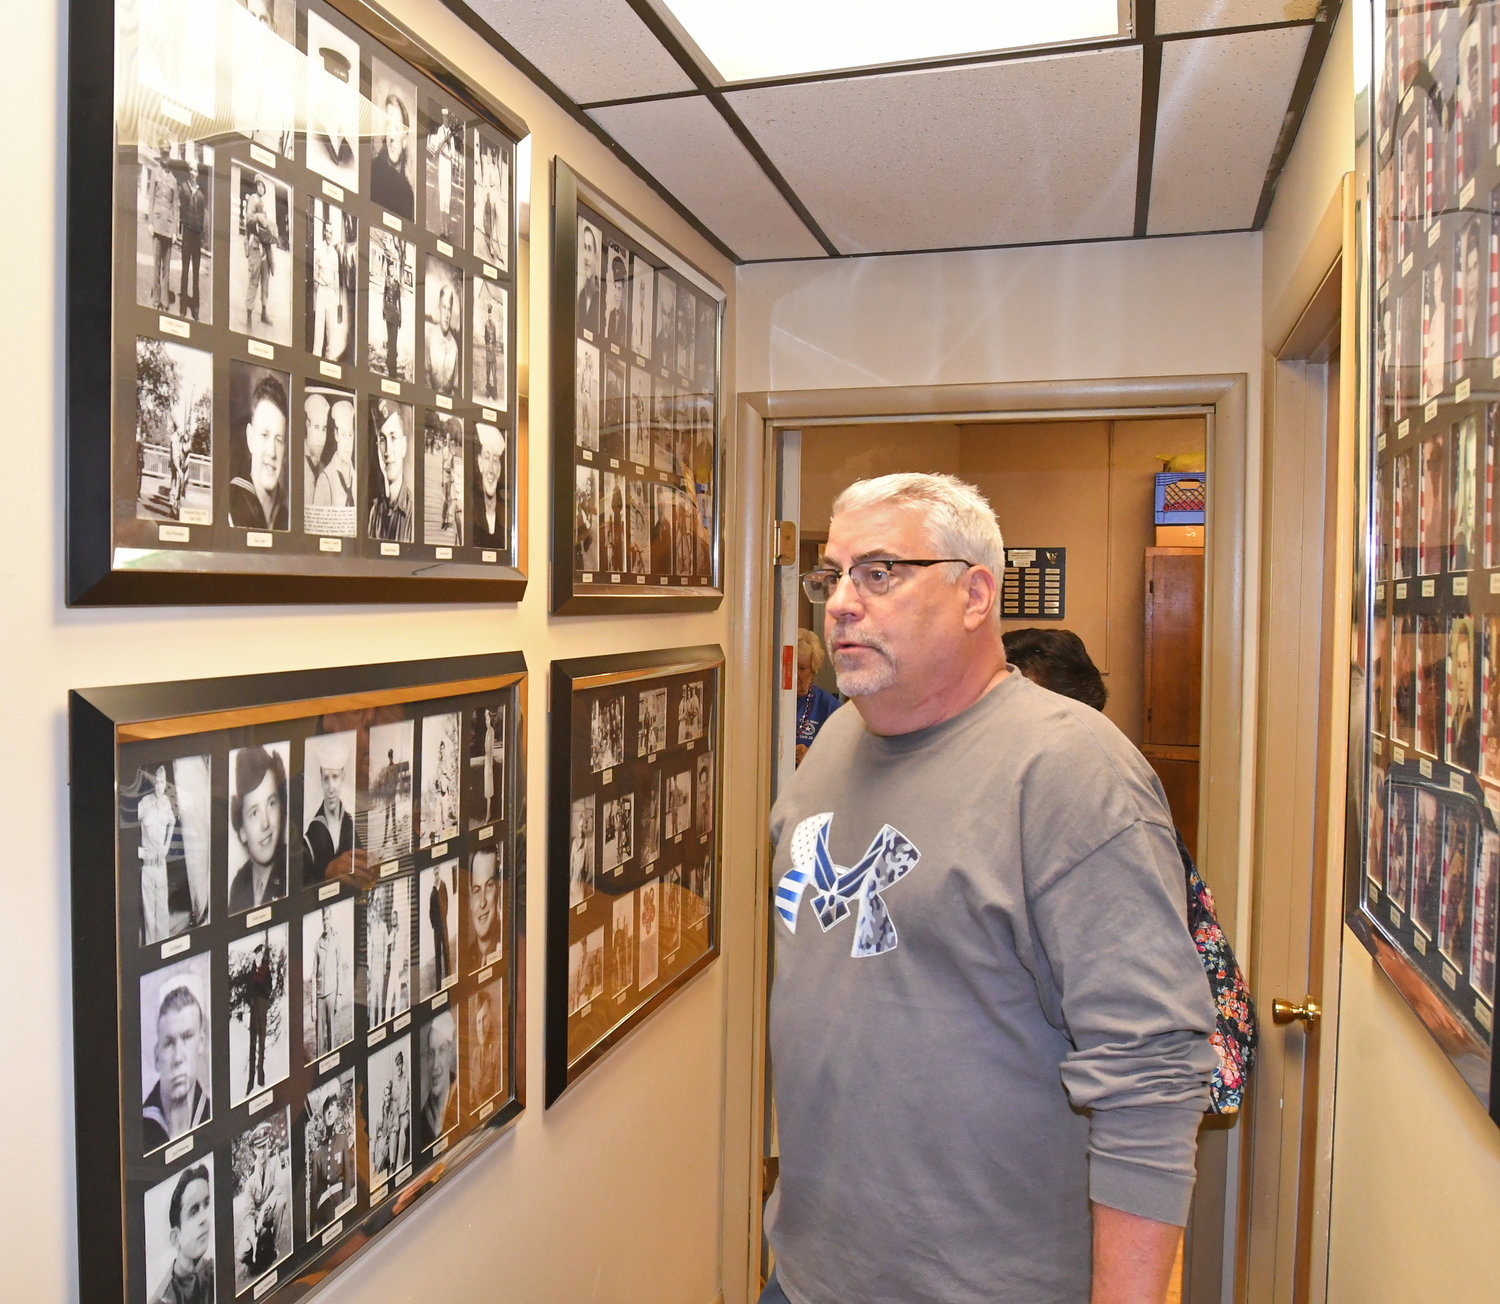 PIECES OF THE PAST — Clark Mills American Legion Commander Jim Nolan looks over photos recently added to the walls of Post 26 during the chapter's Party on the Porch event on June 14.